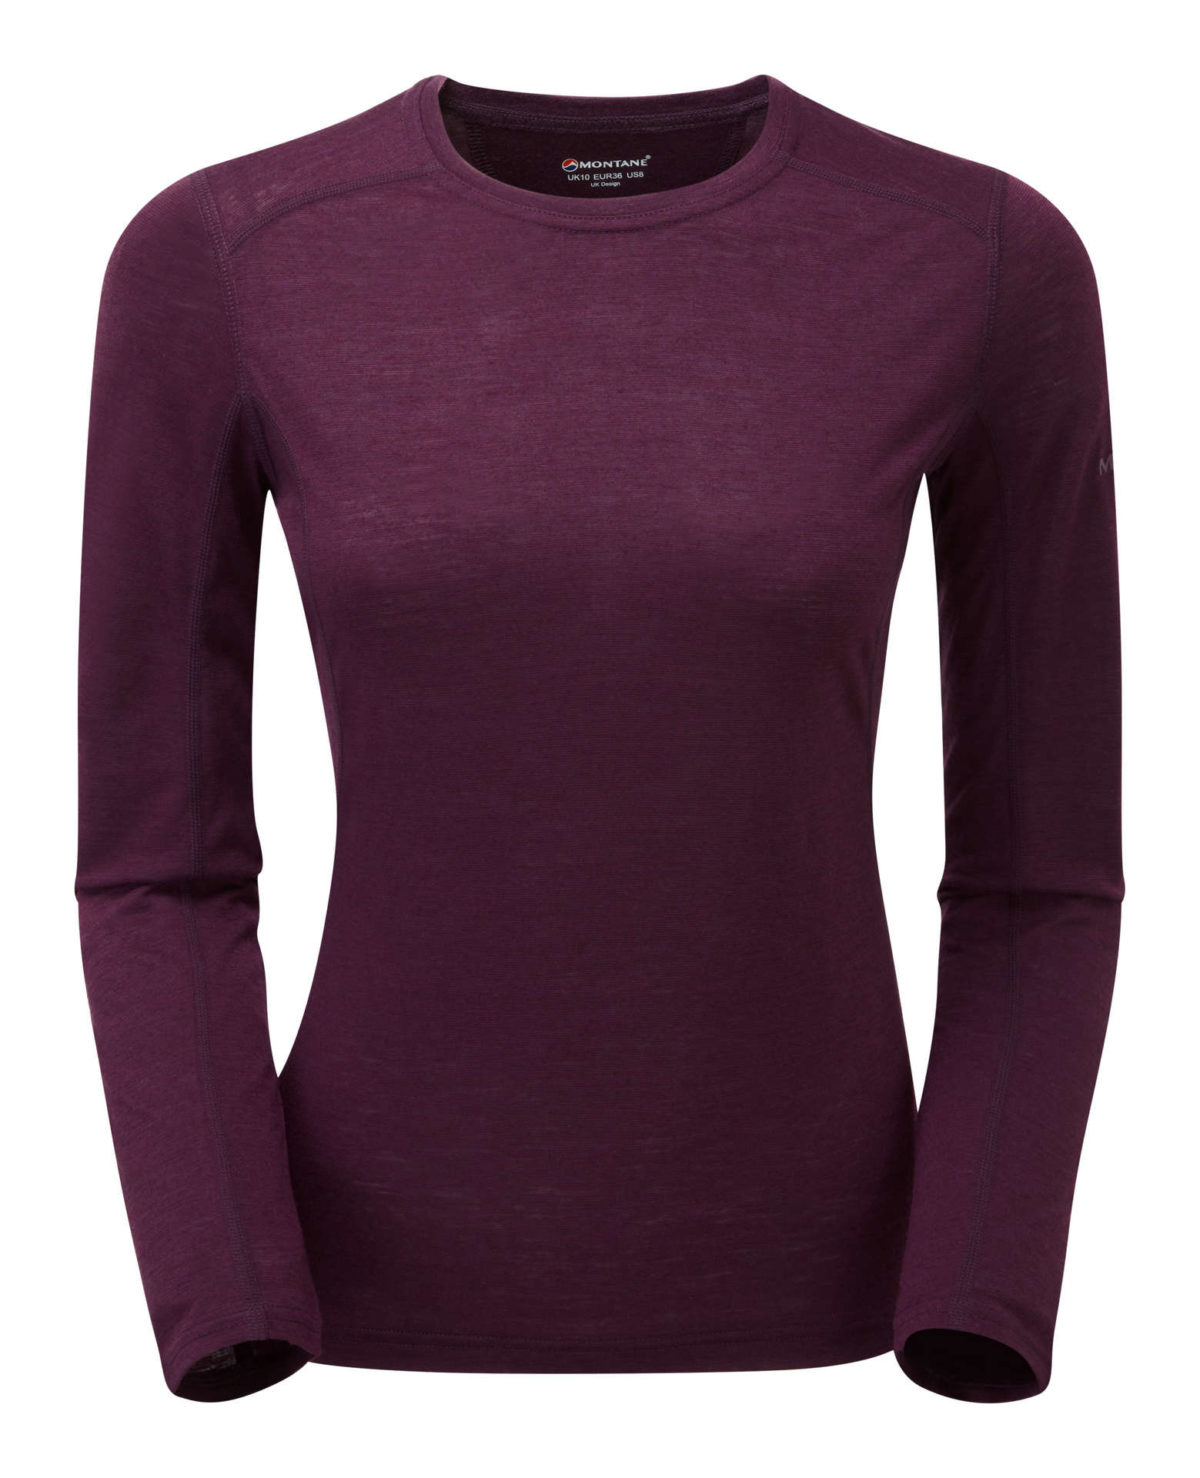 Montane Womens Phoenix Jacket Top Long Sleeve Casual Clothing Purple